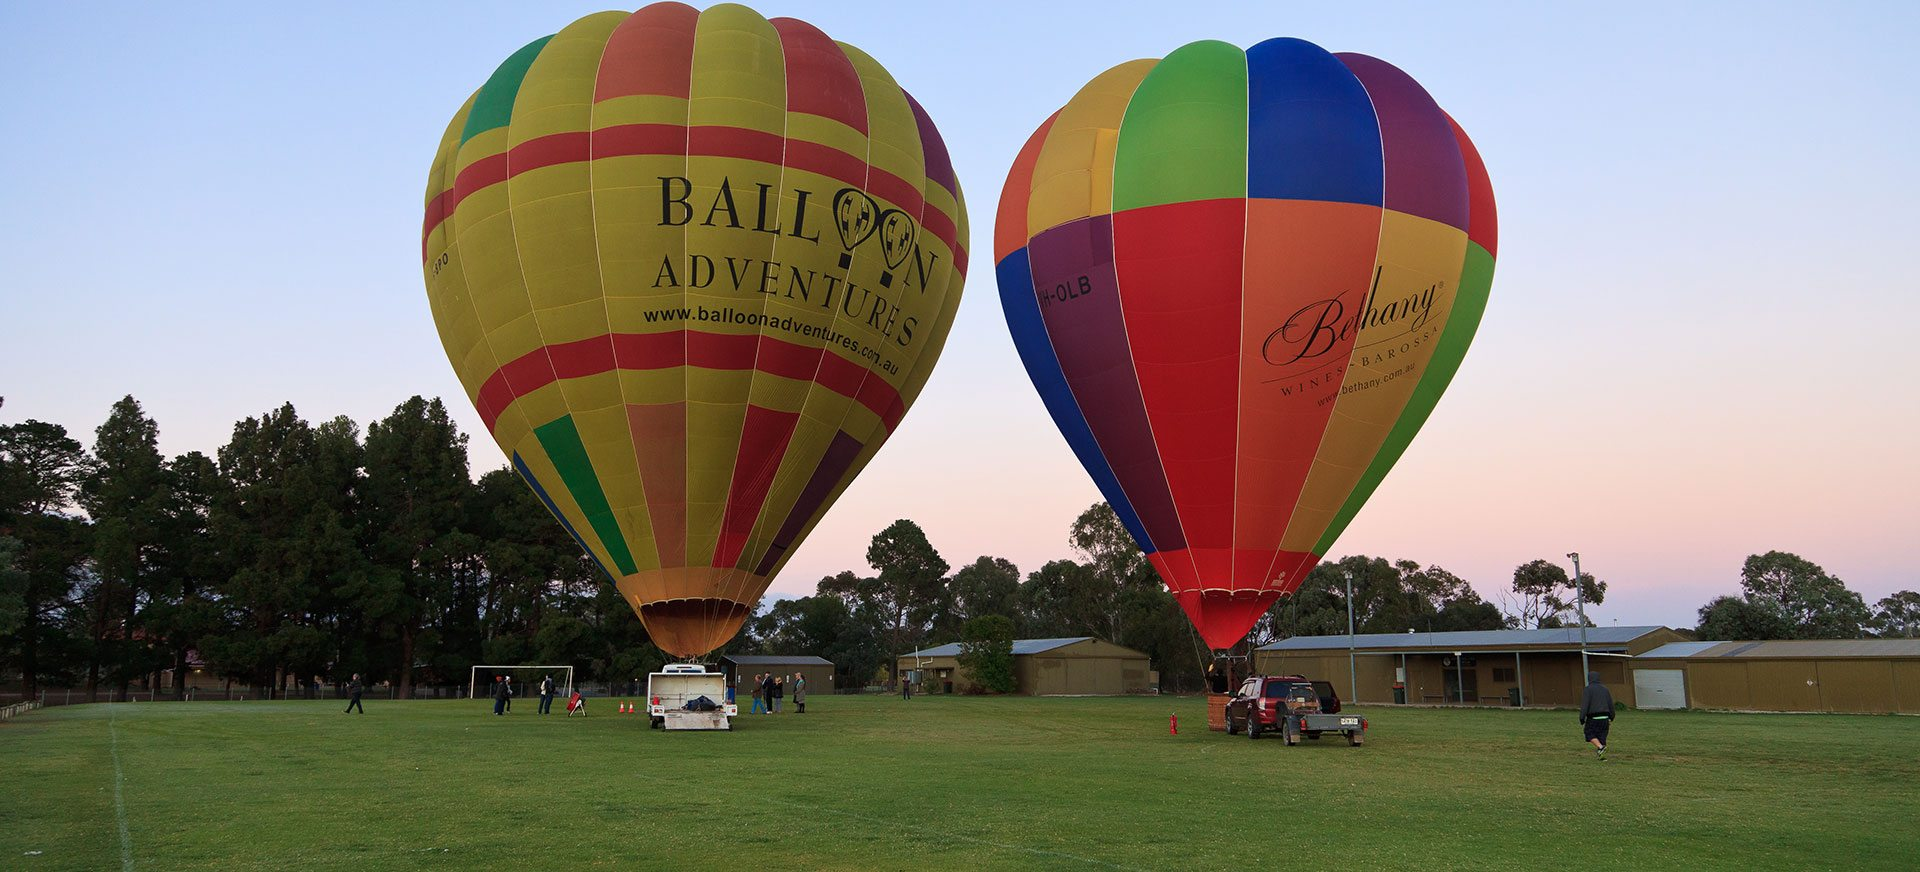 Two hot air balloons from Balloon Adventures Barossa, SA